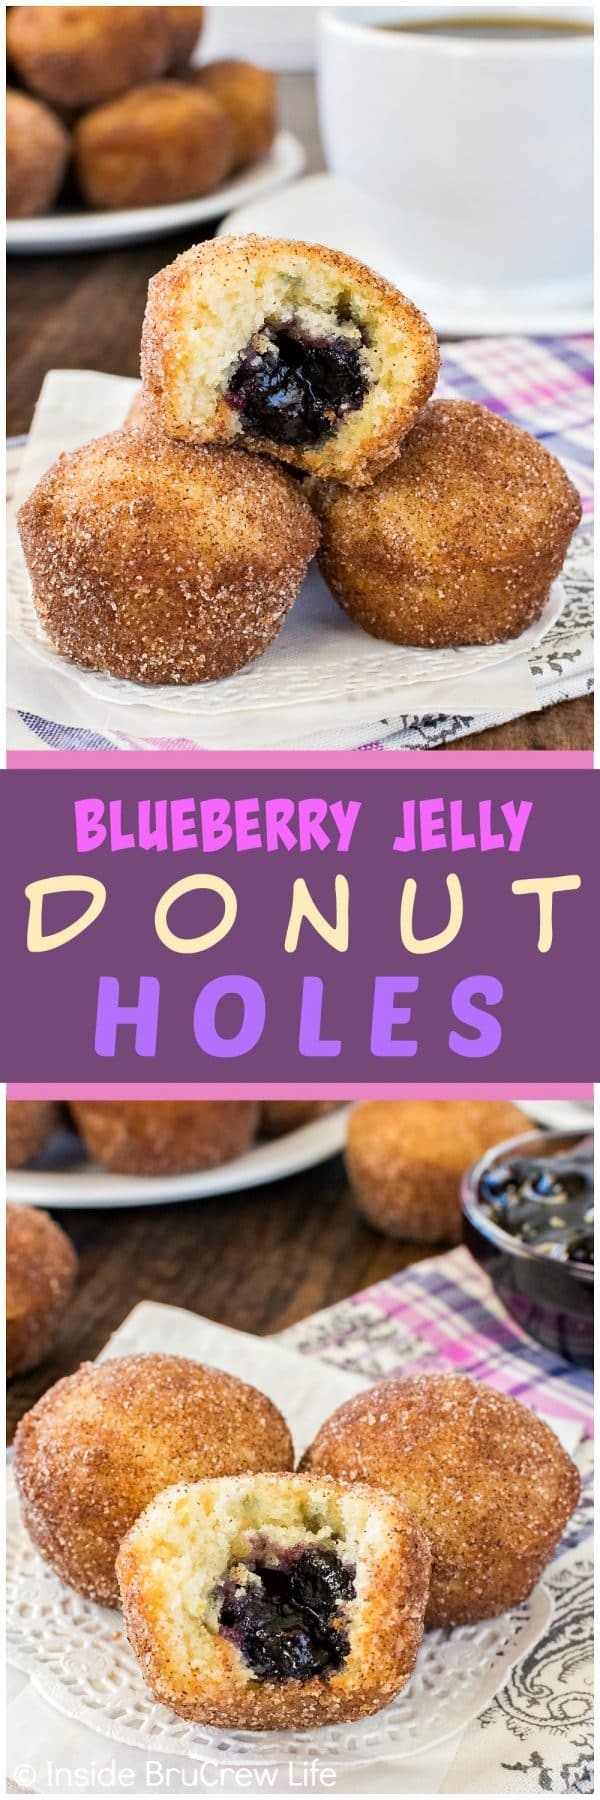 Two photos of Blueberry Jelly Donut Holes on a white doily